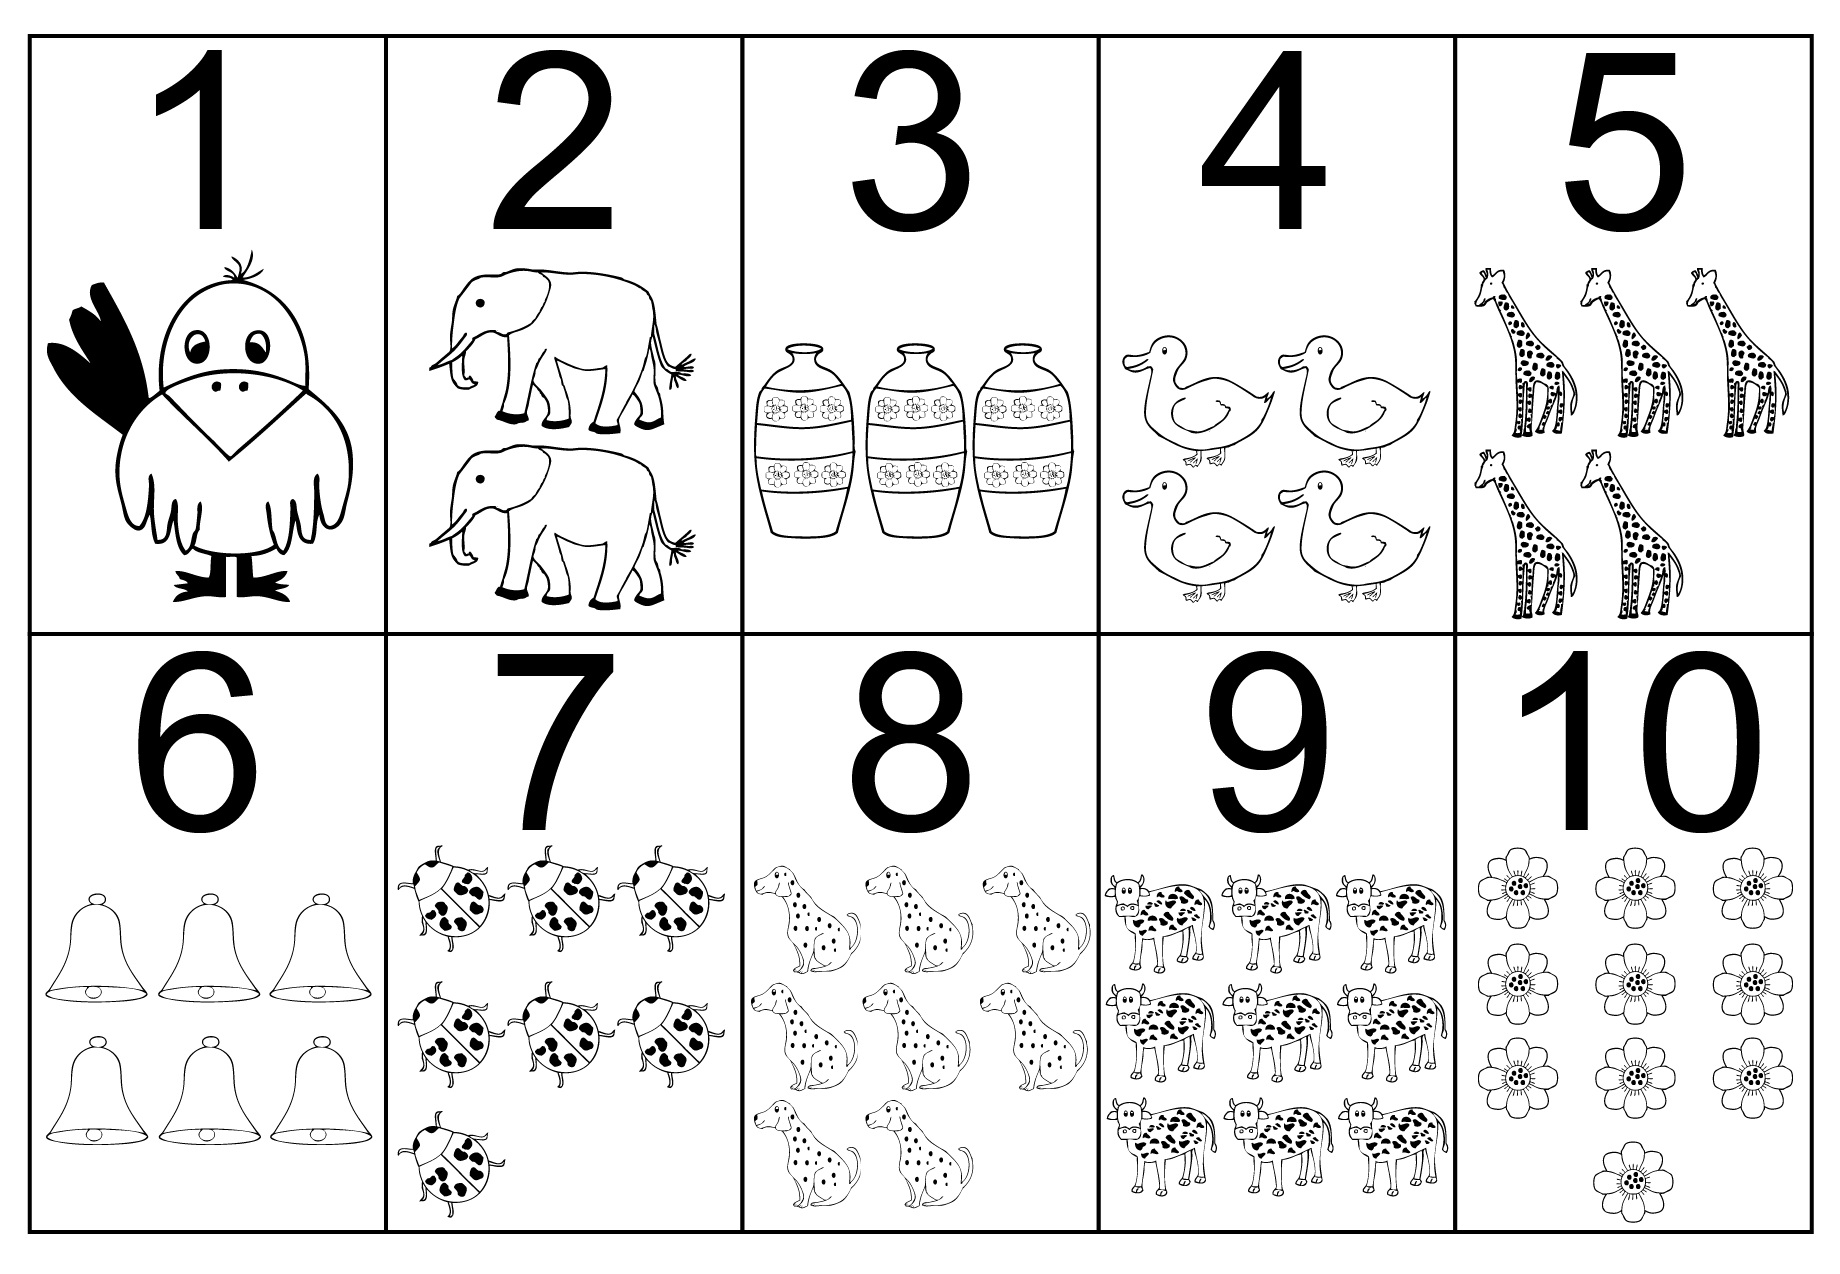 Number Coloring Pages Free Printable Number Coloring Pages For Kids